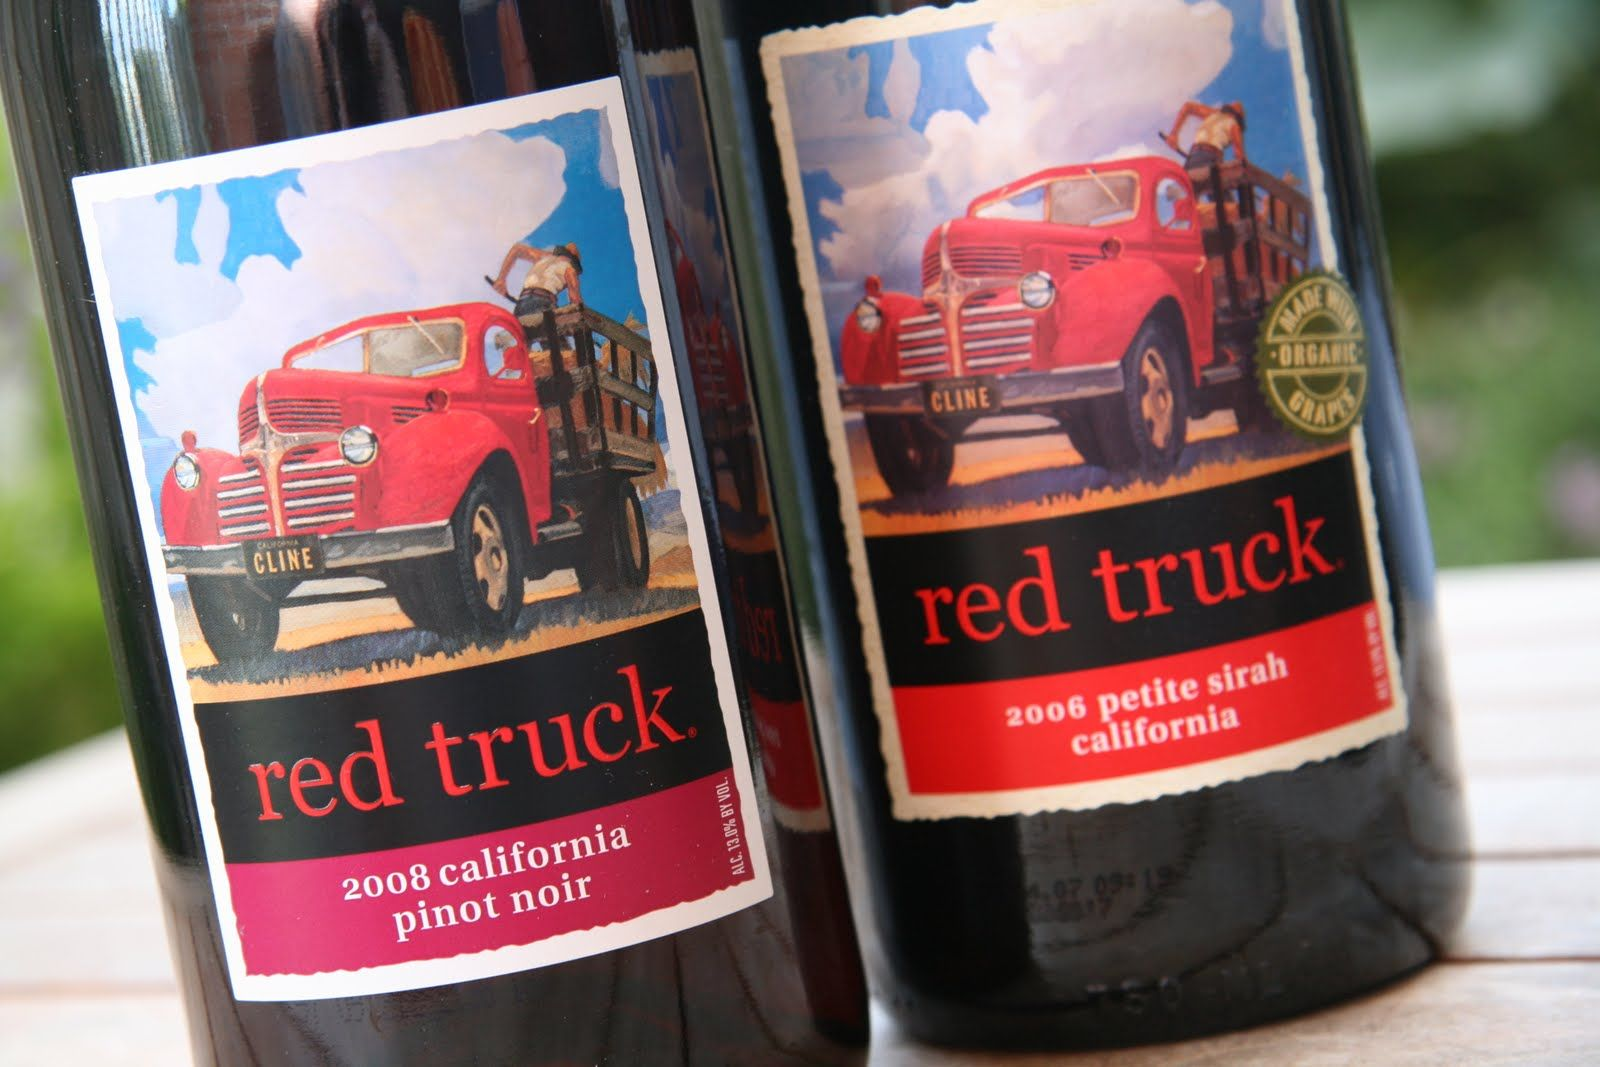 Red Truck Pinot Noir Really Bright Color Very Berry Cherry Good Not Great But Nice And Fruity Very Drinkable Pinot No Wine Images Red Truck Wine Bottle